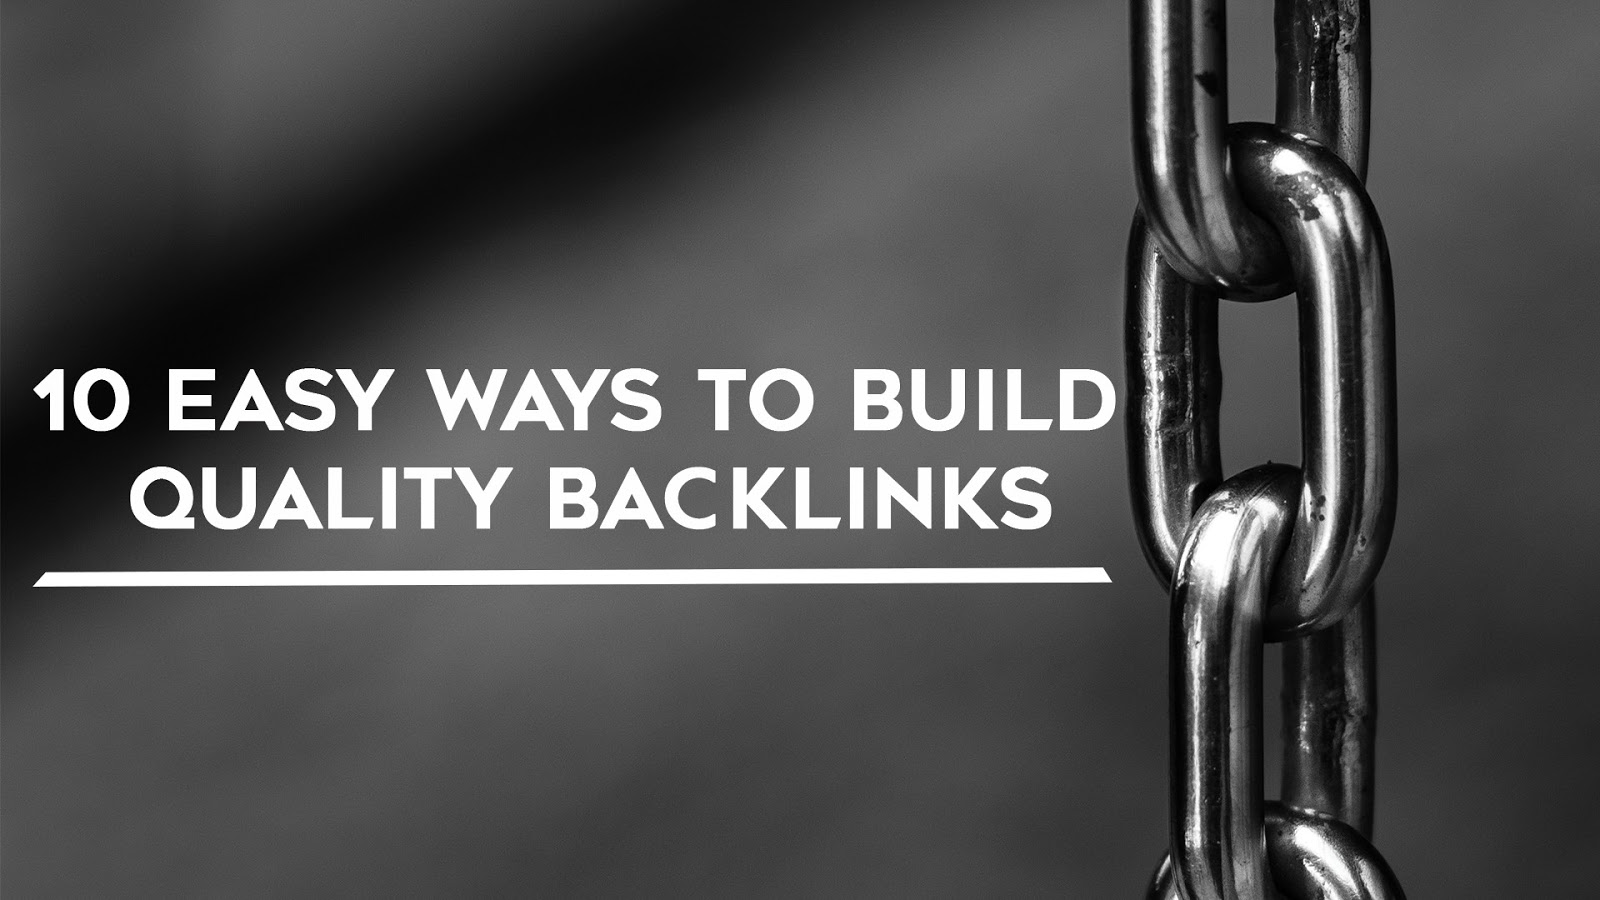 Build Free Quality Backlinks for Your New Website In 10 Easy Ways